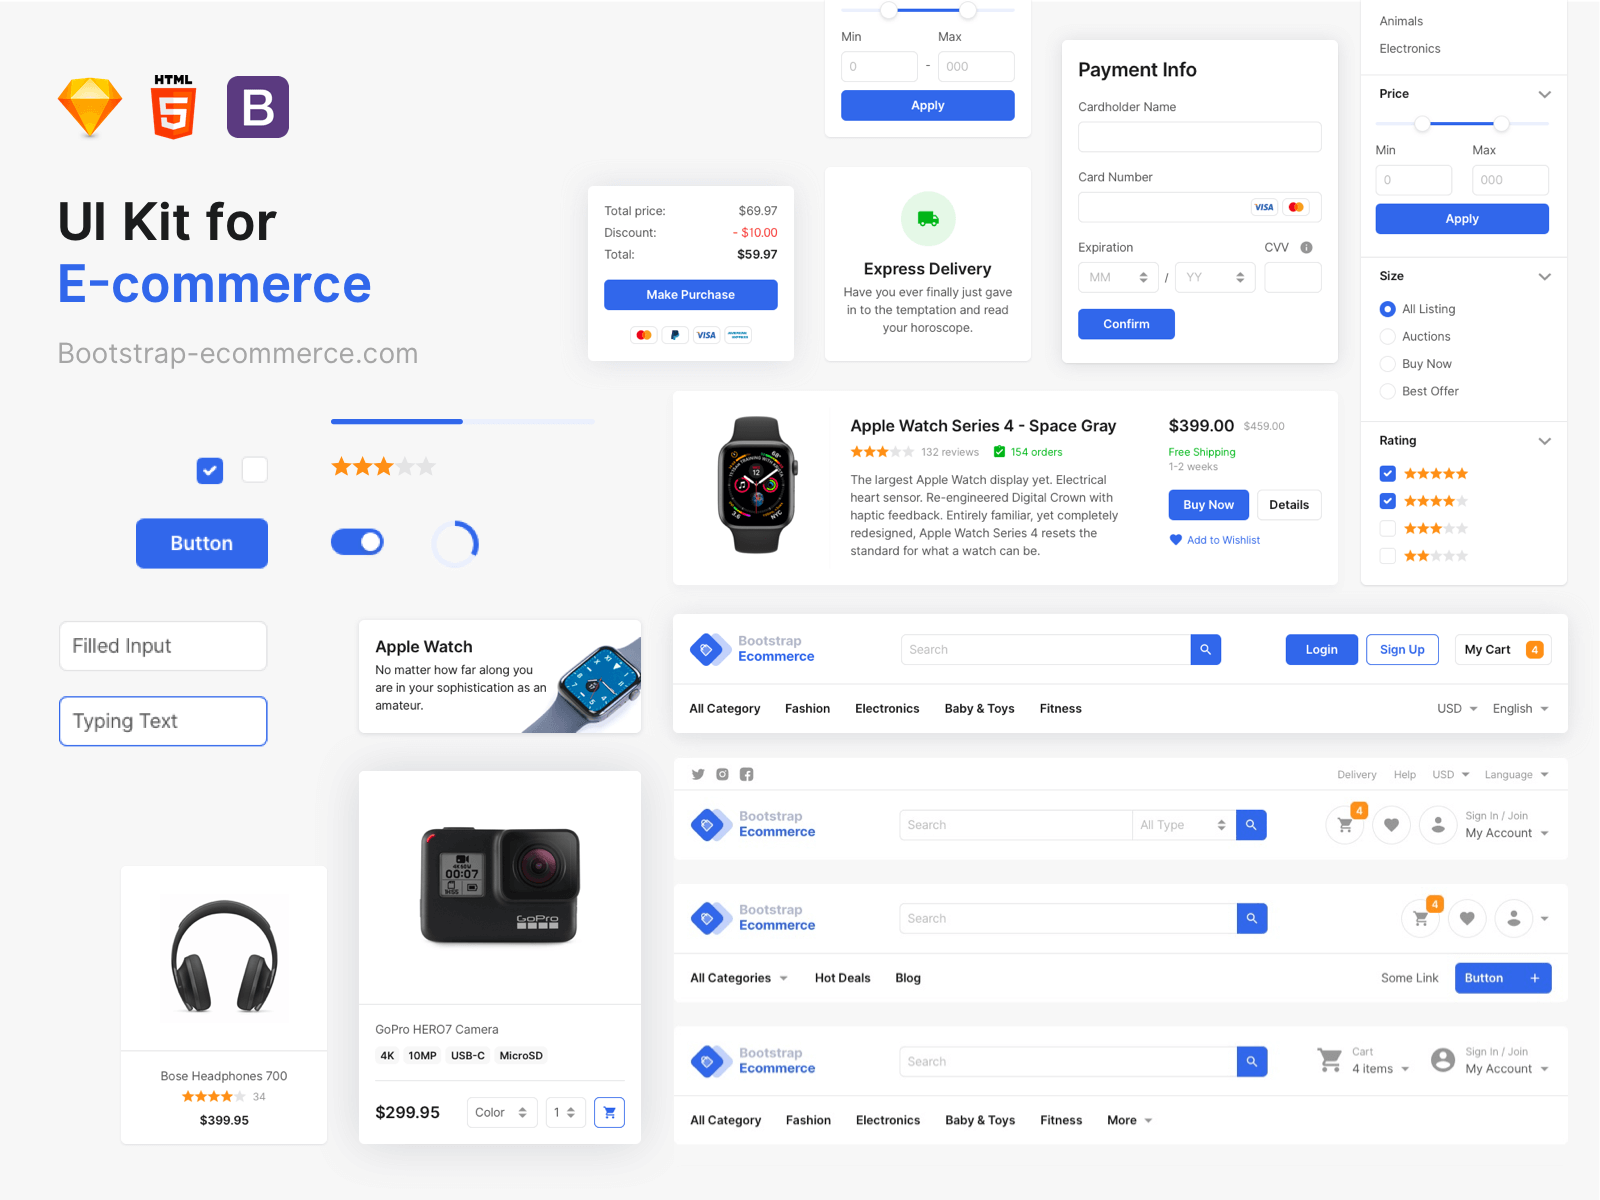 Assortment of different user interface elements